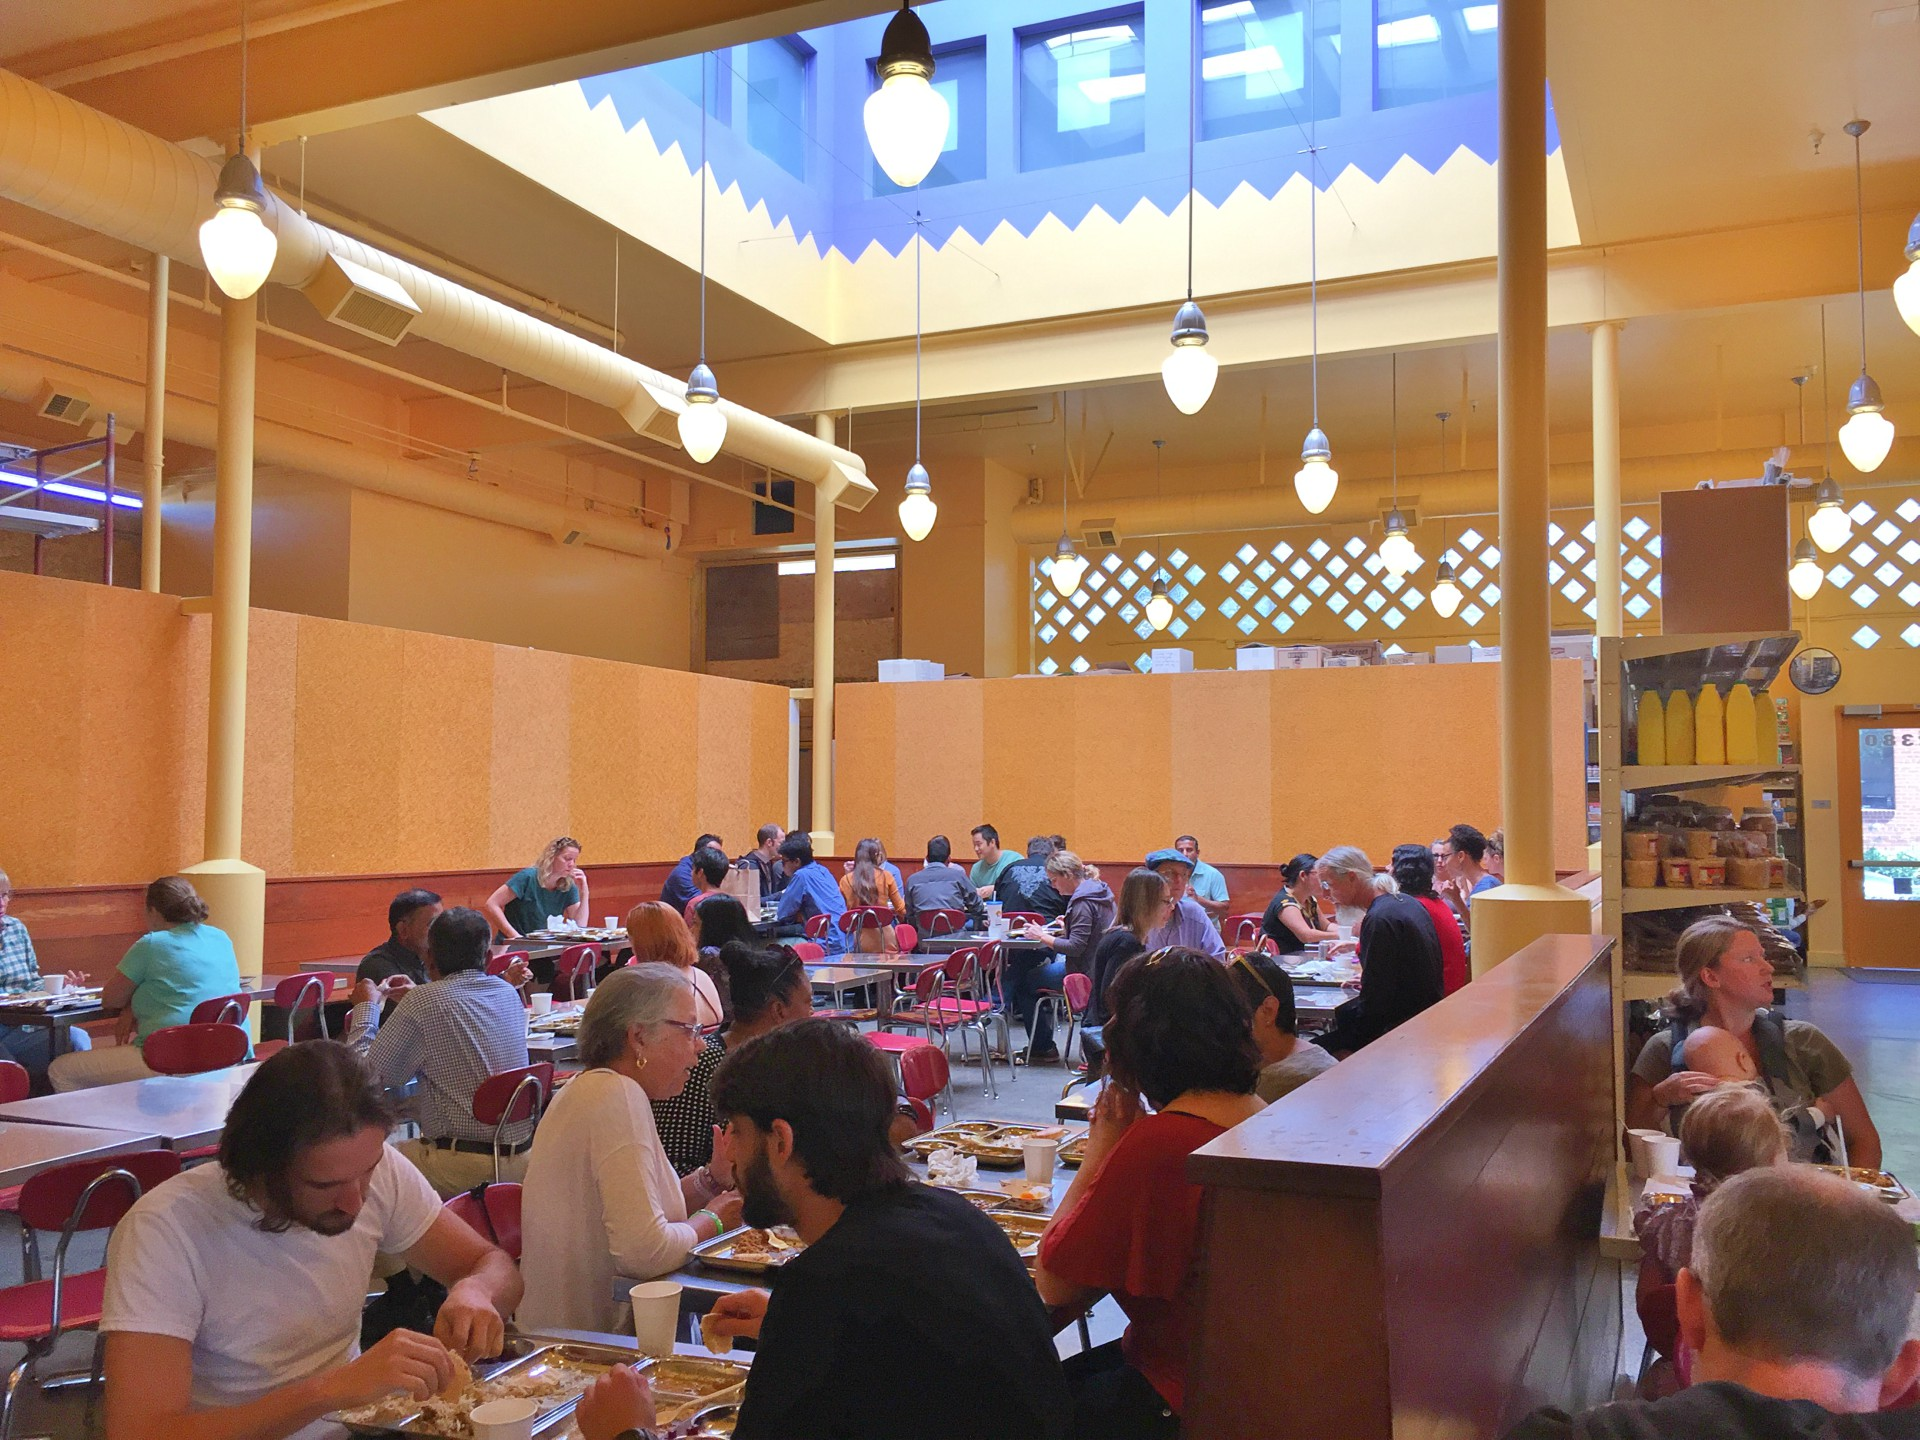 Popular Indian restaurant Vik's is housed in a building with several sustainable features, including skylights to moderate temperature instead of air conditioning.